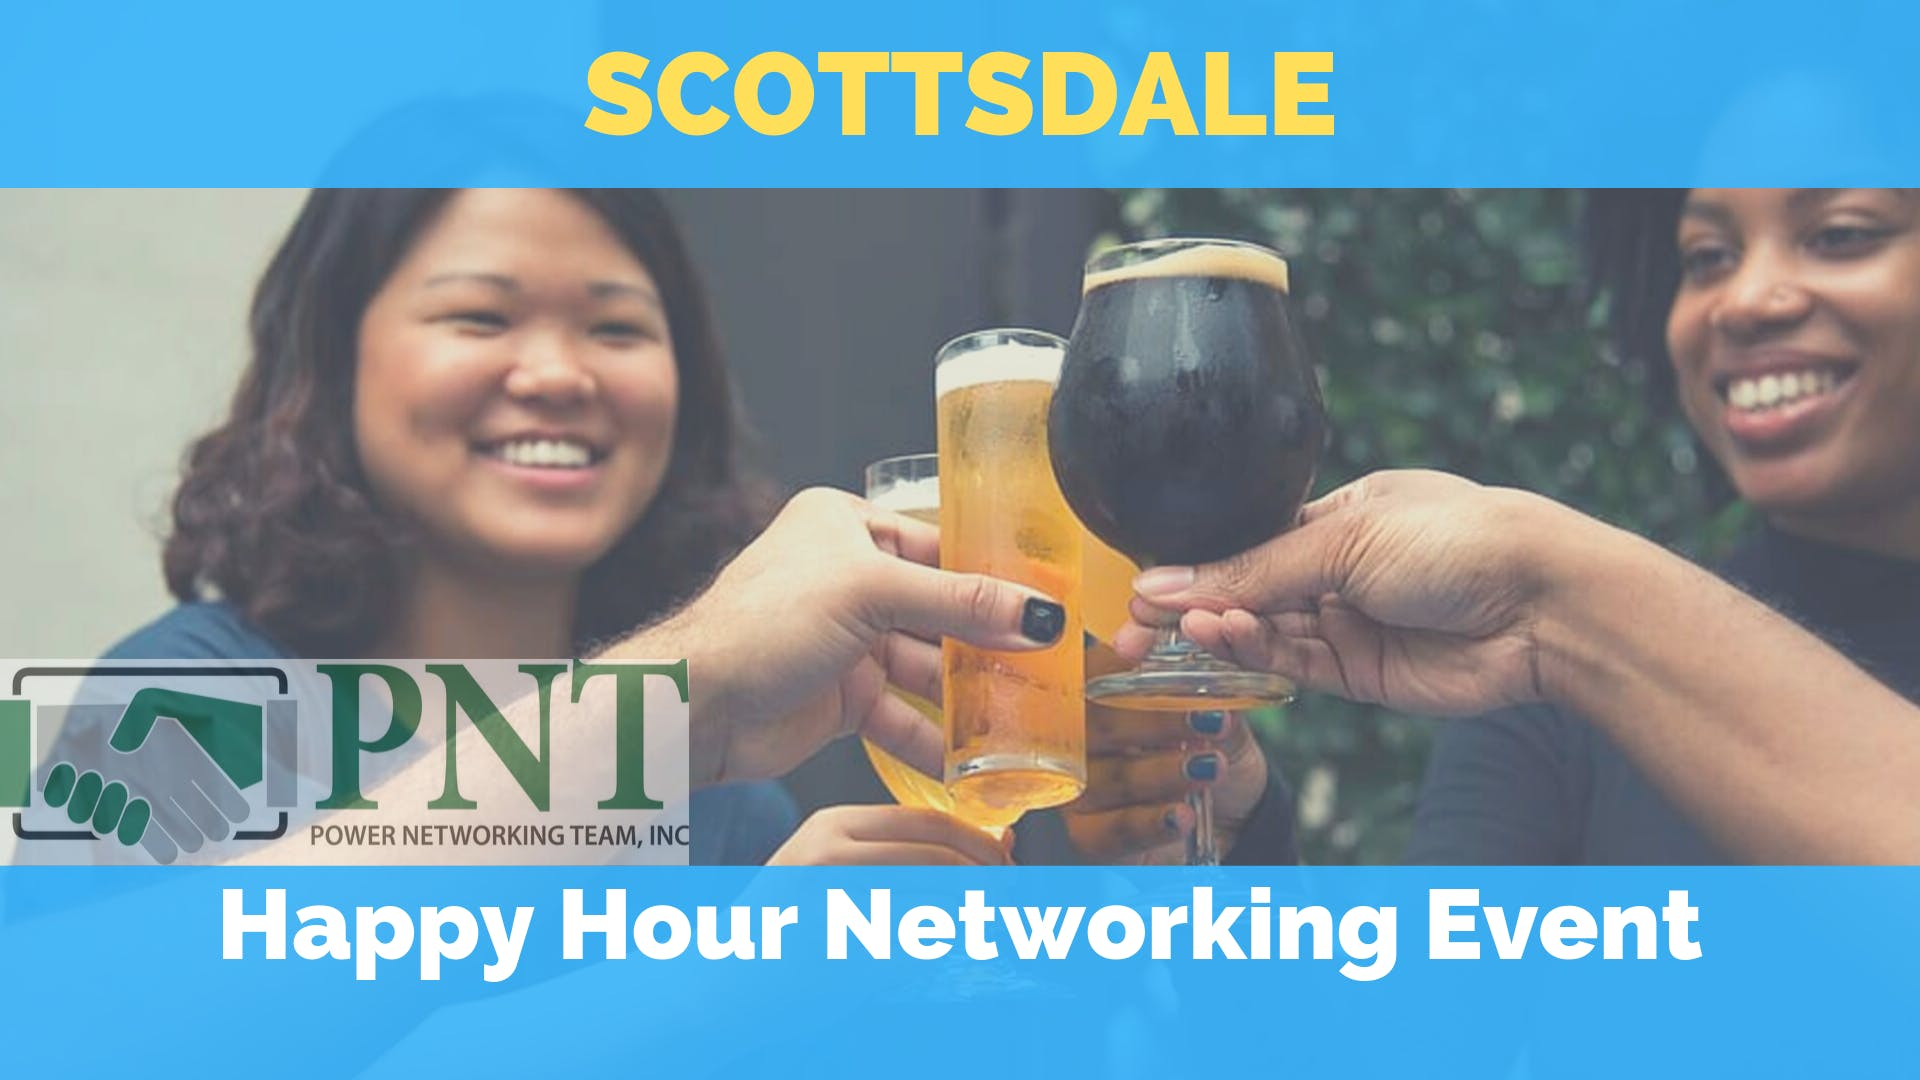 10/22/19 PNT Scottsdale Chapter - Happy Hour Networking Event